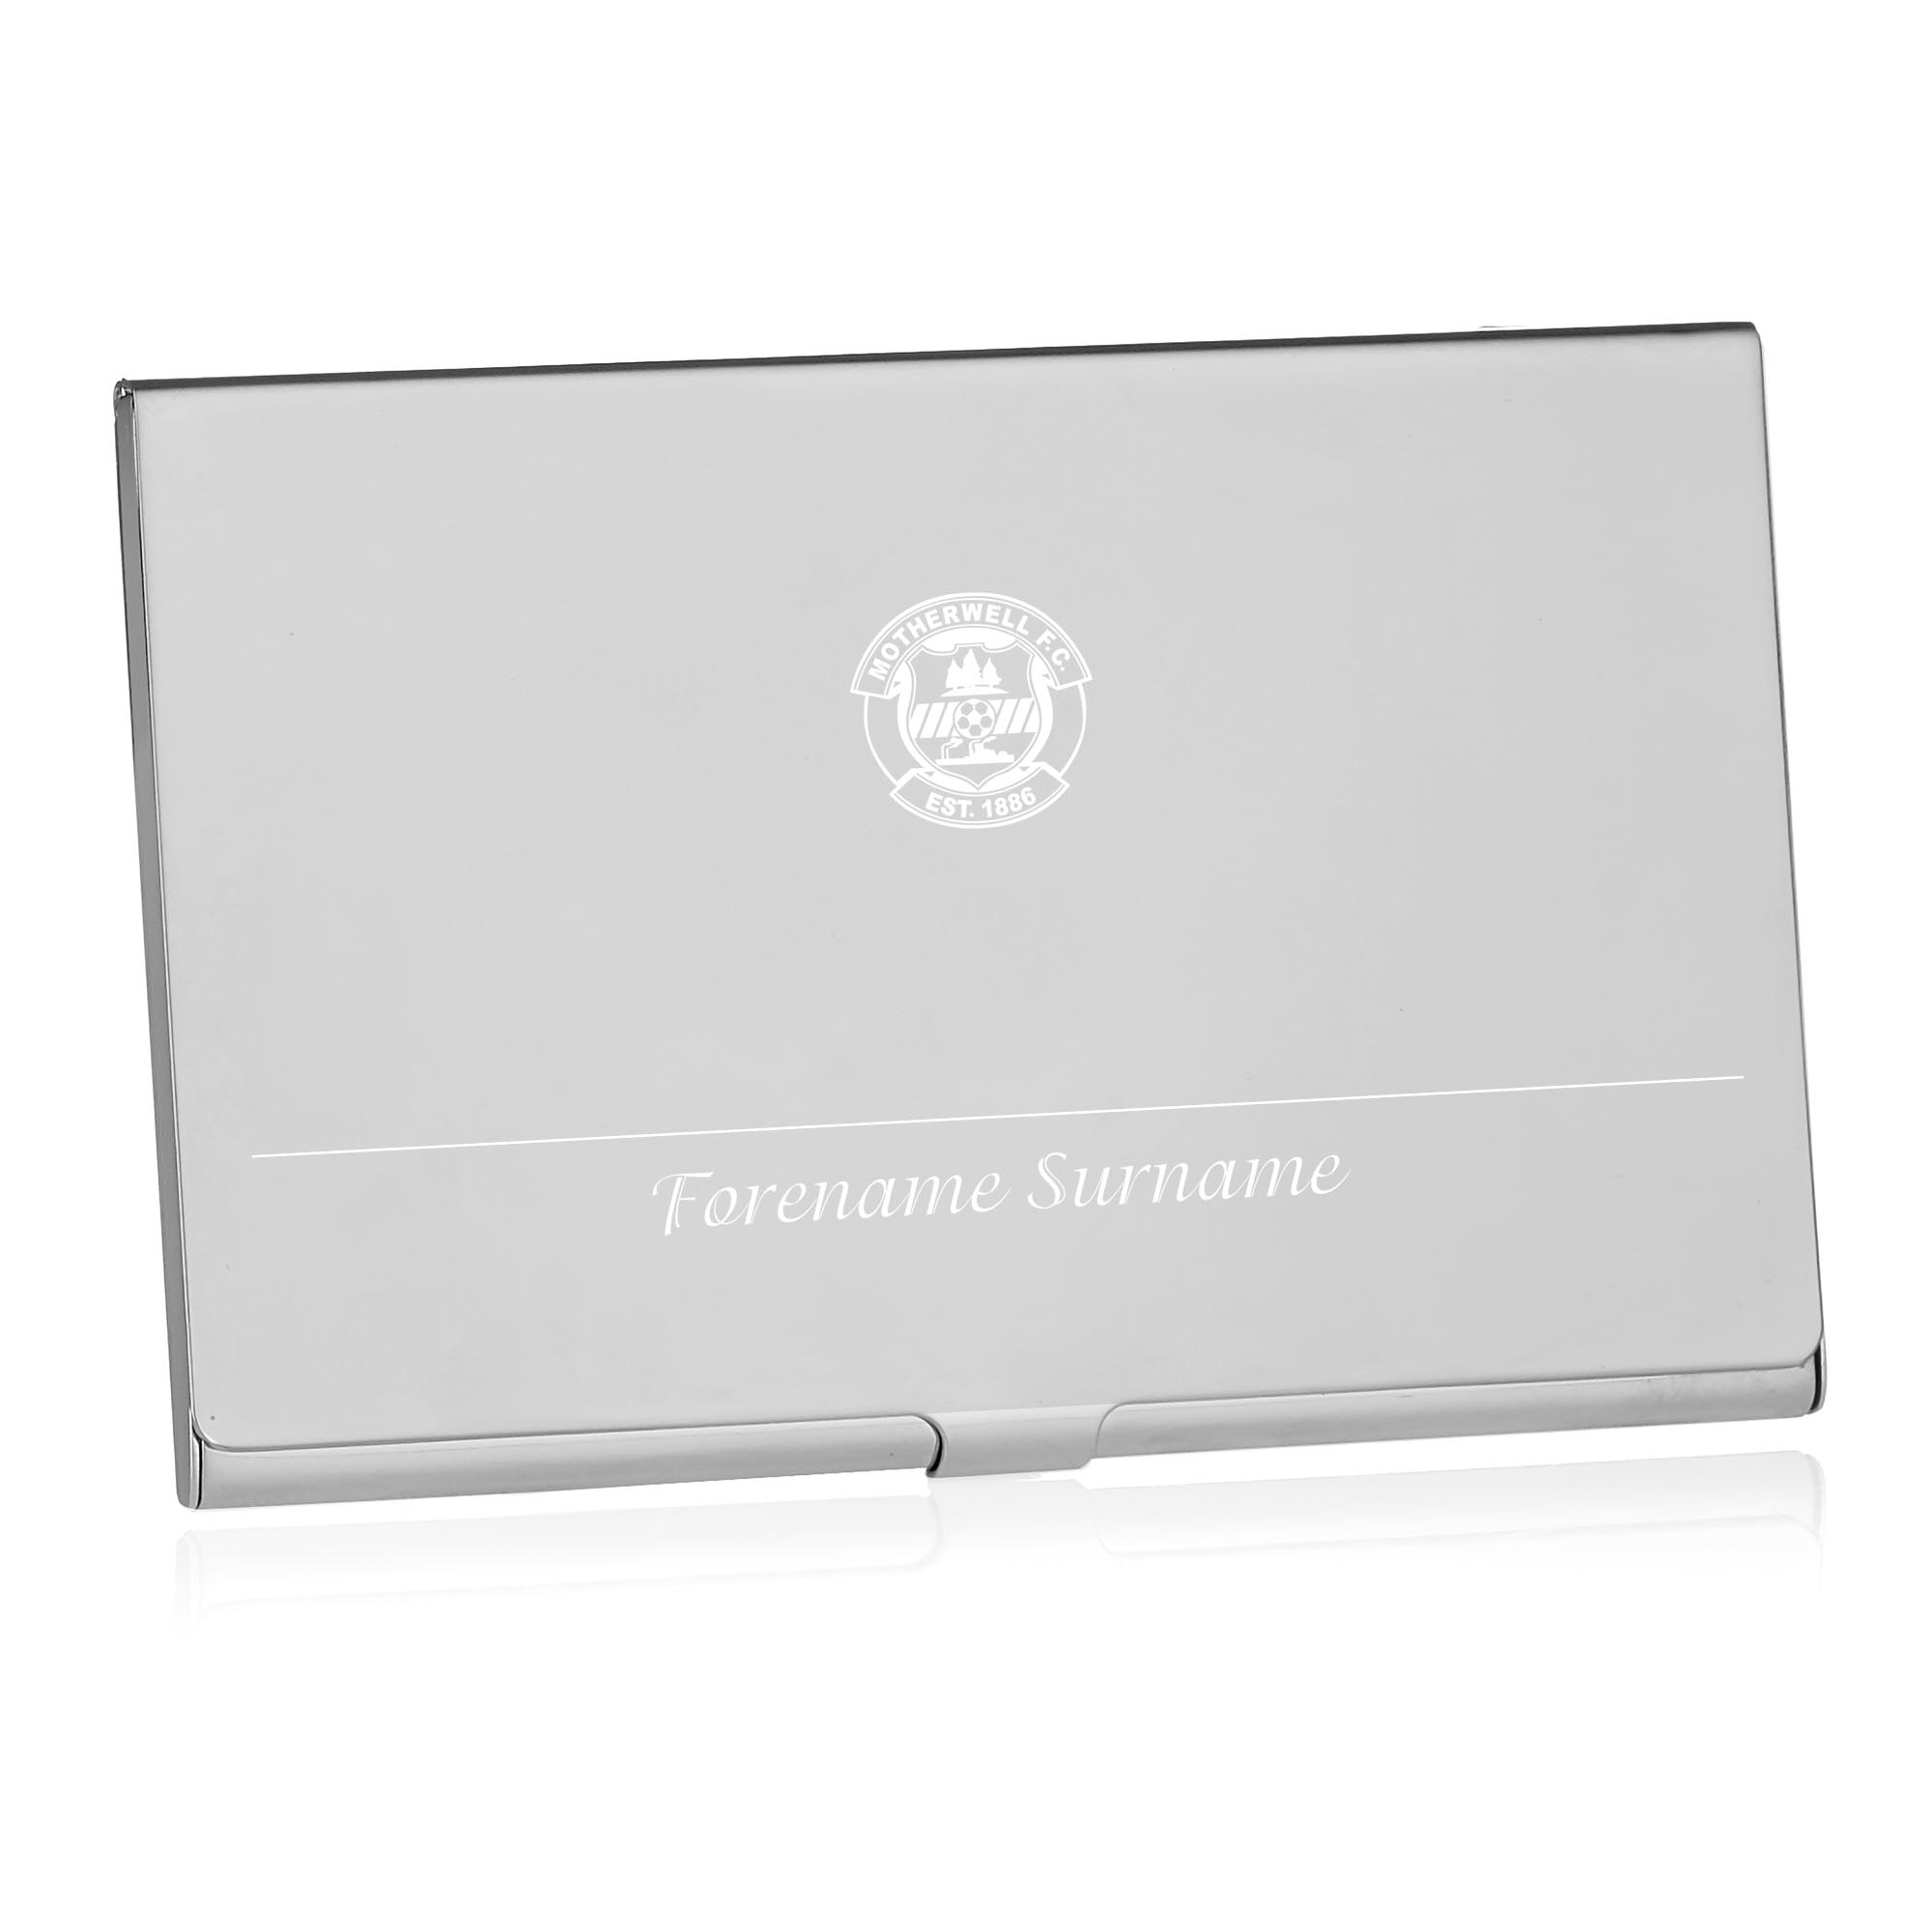 Motherwell FC Executive Business Card Holder